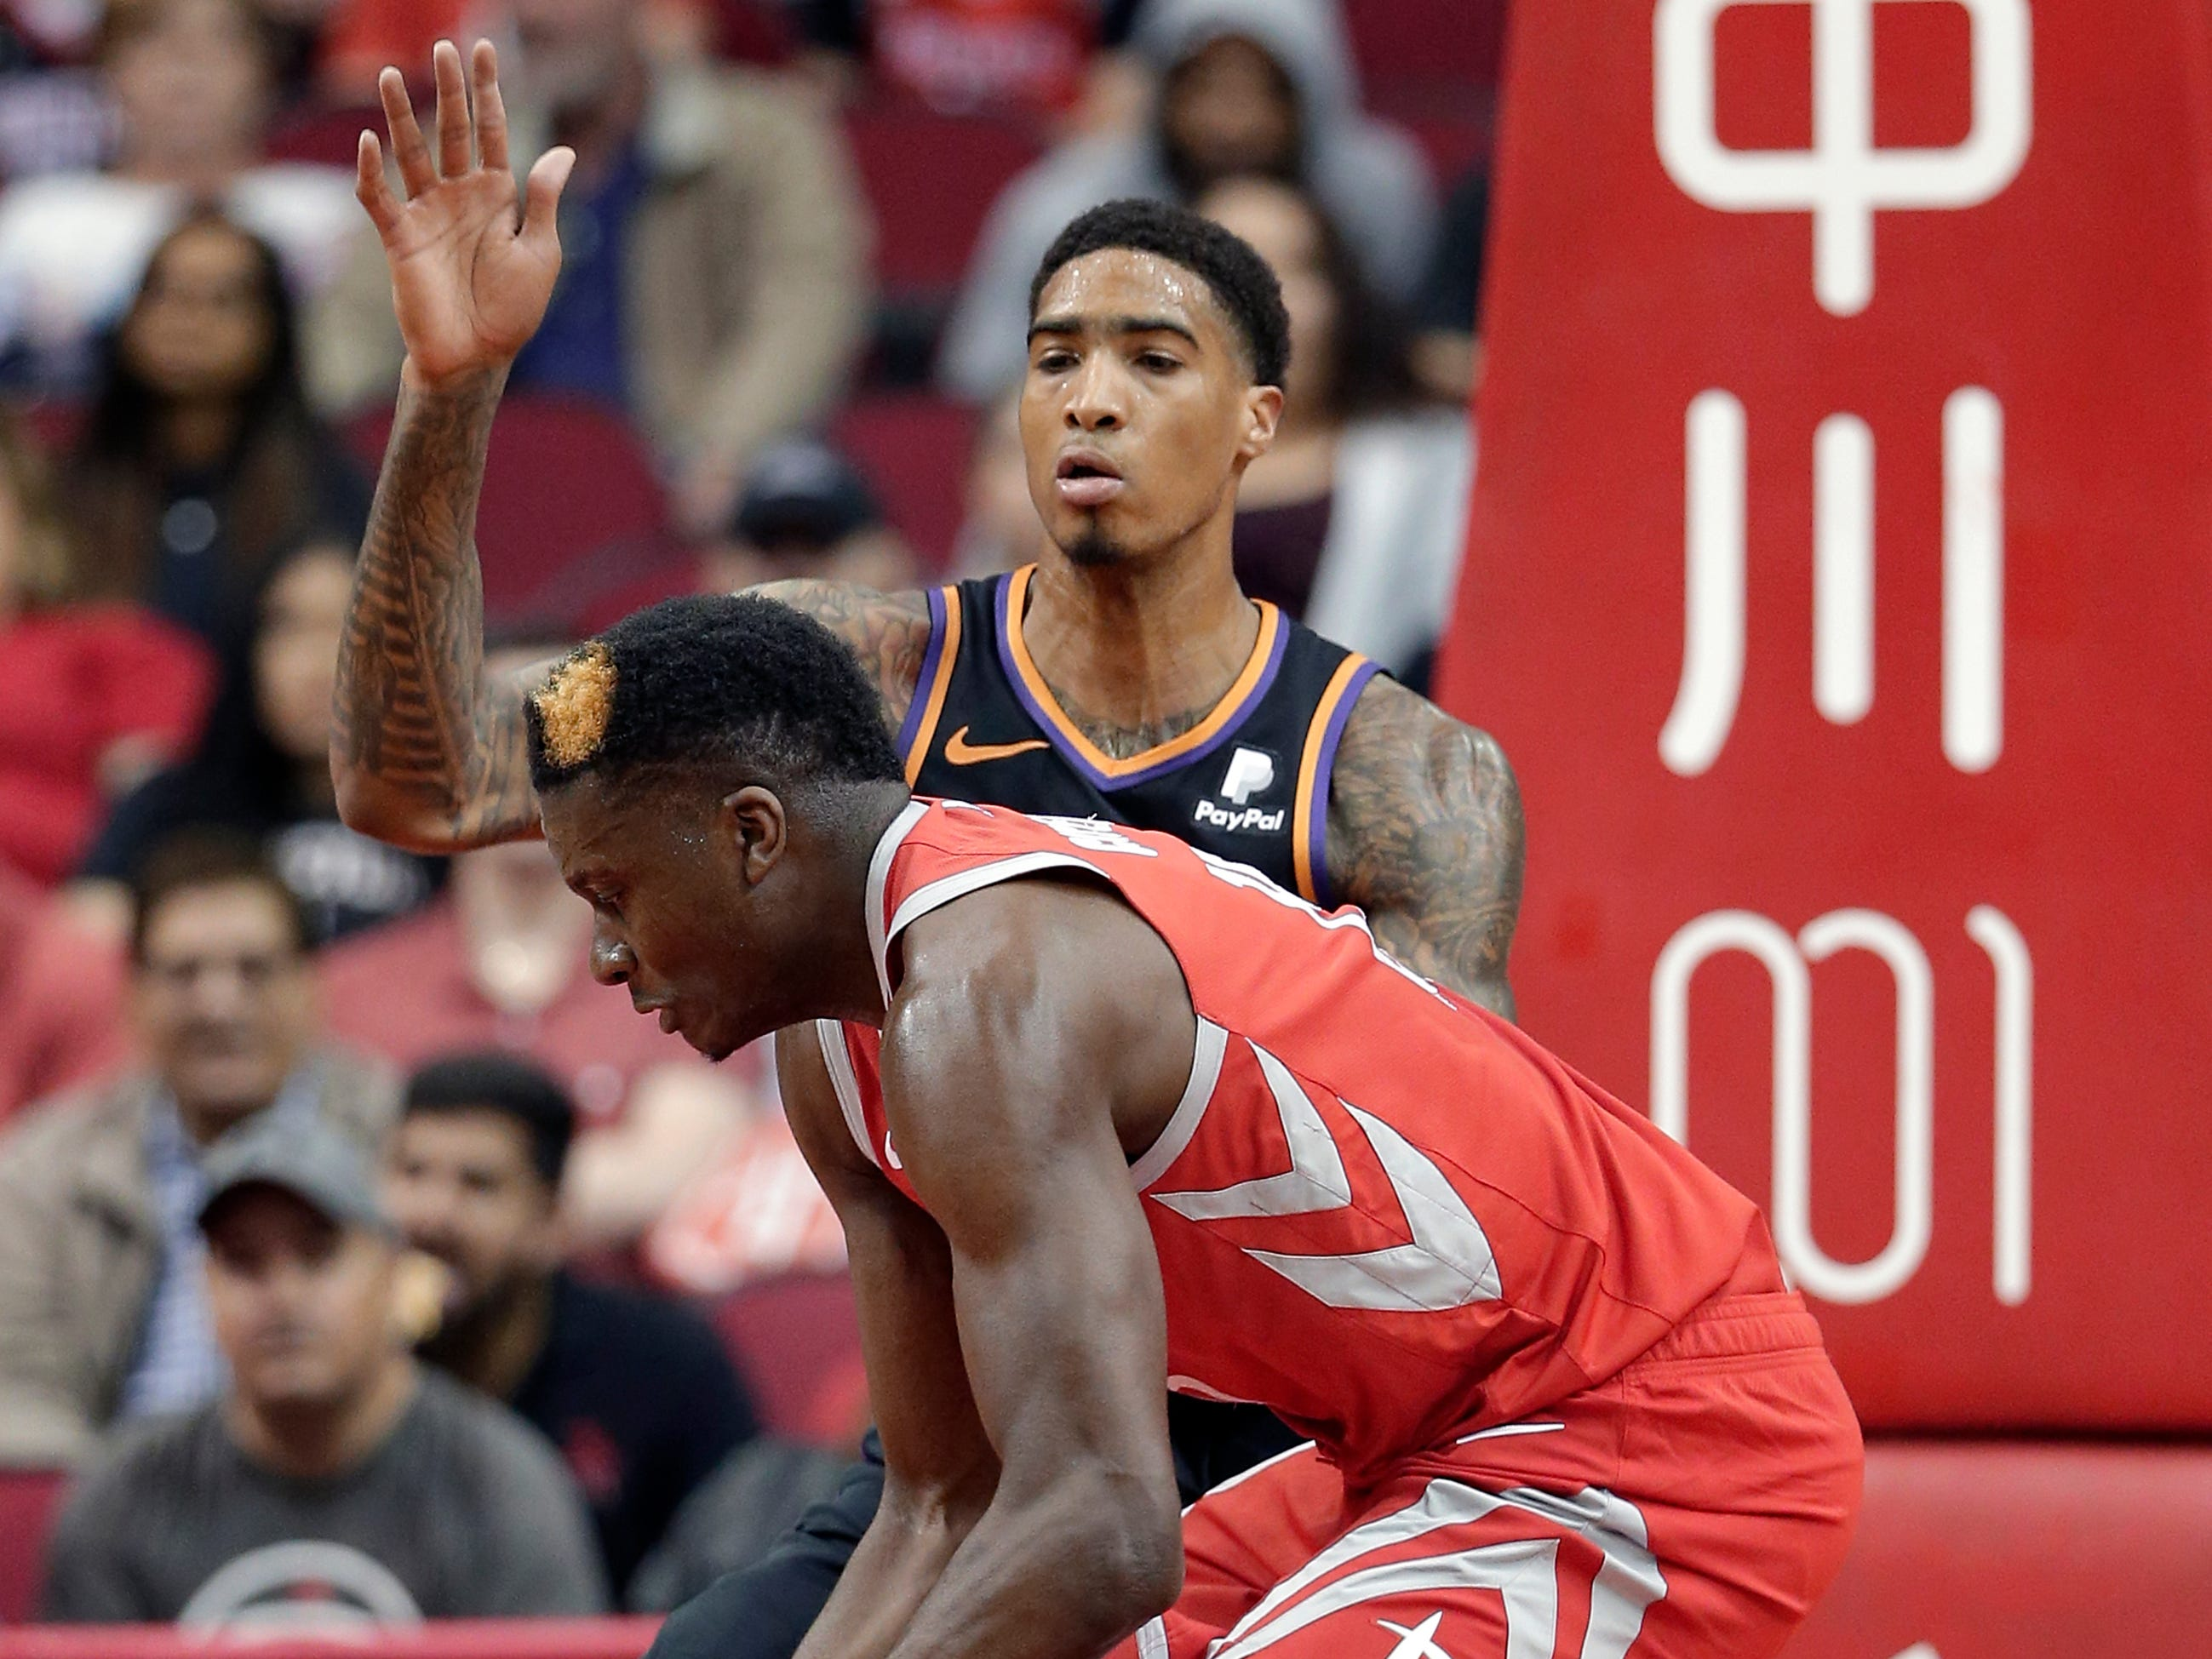 Houston Rockets center Clint Capela, front, recovers a rebound after is was knocked away by Phoenix Suns forward Ray Spalding, back, during the first half of an NBA basketball game Sunday, April 7, 2019, in Houston. (AP Photo/Michael Wyke)